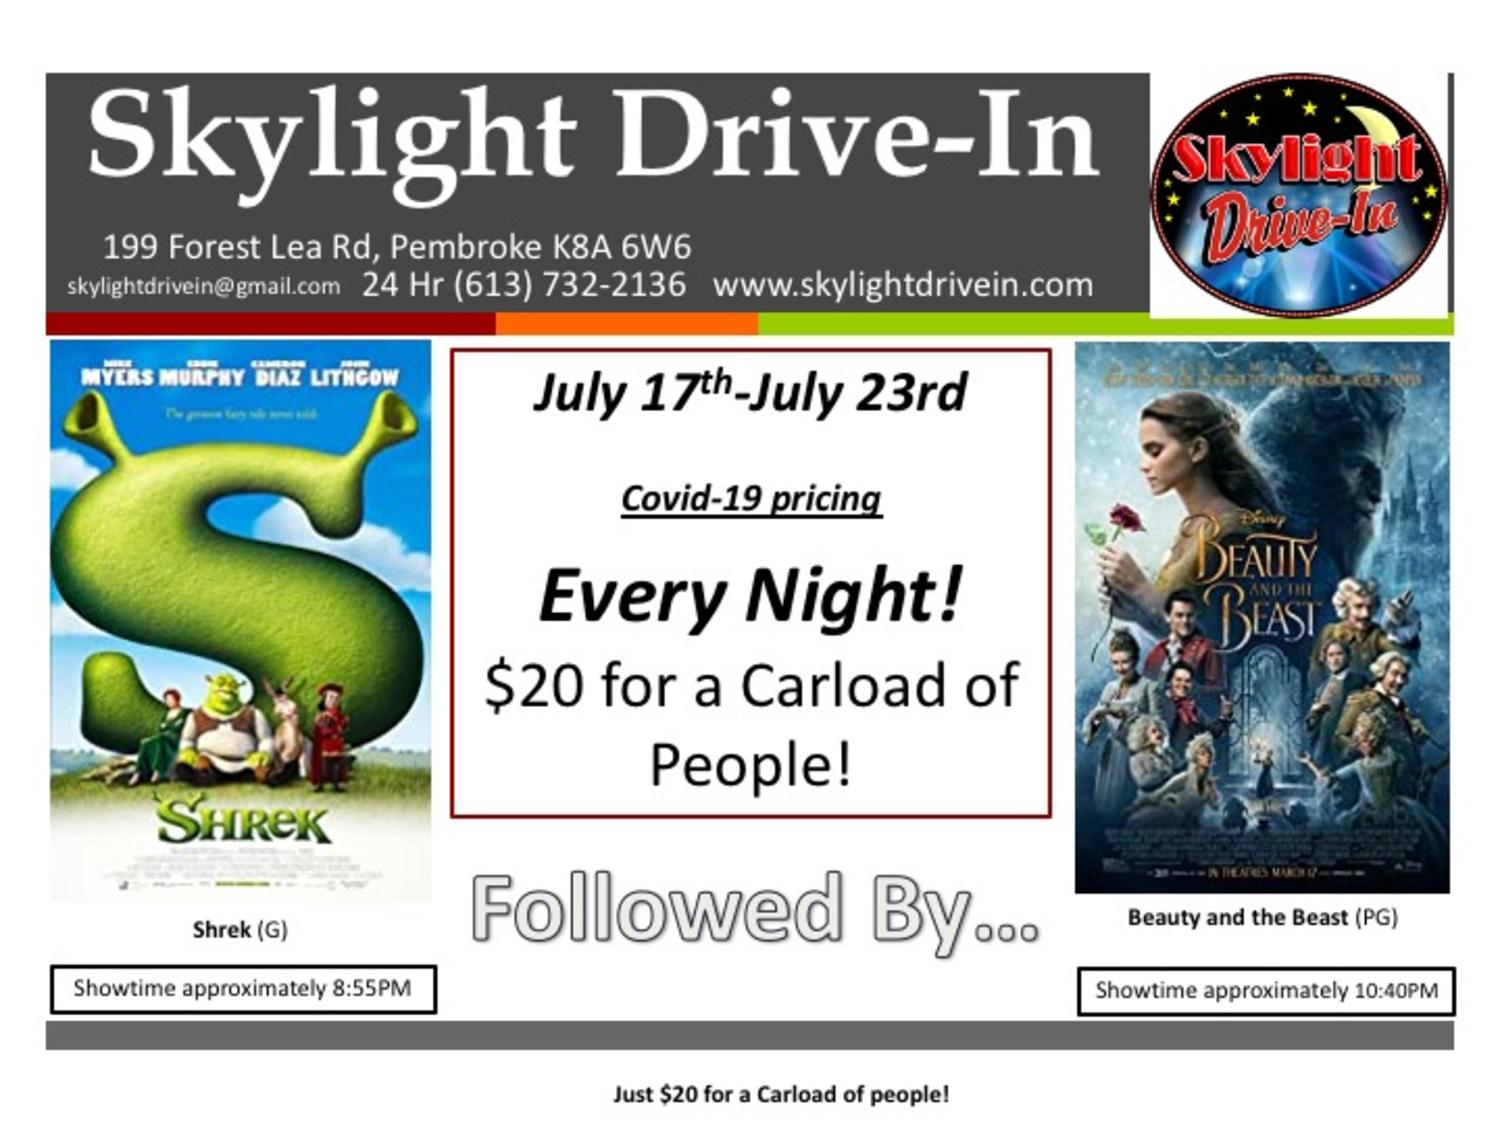 Skylight Drive-In featuring Shrek followed by Disney's Beauty And The Beast